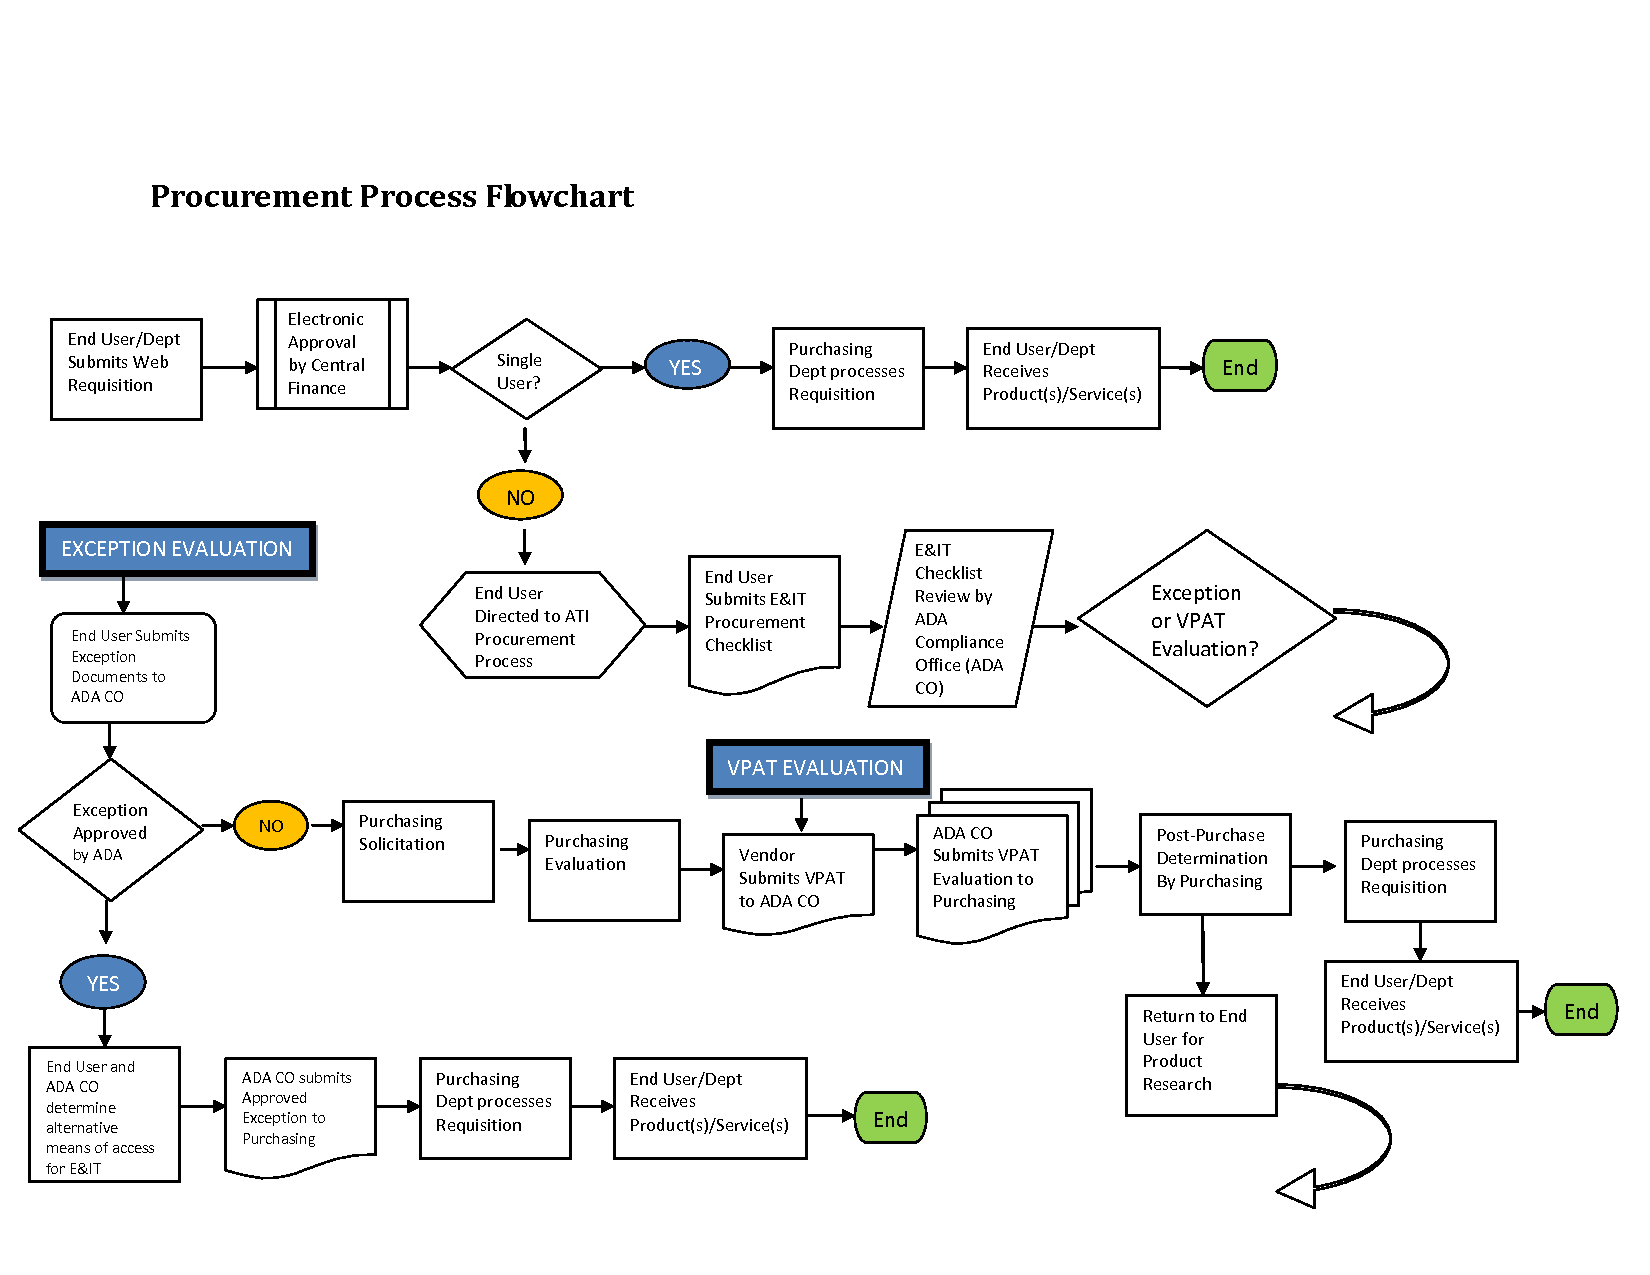 12 Awesome procurement process flow chart template images | Projects ...